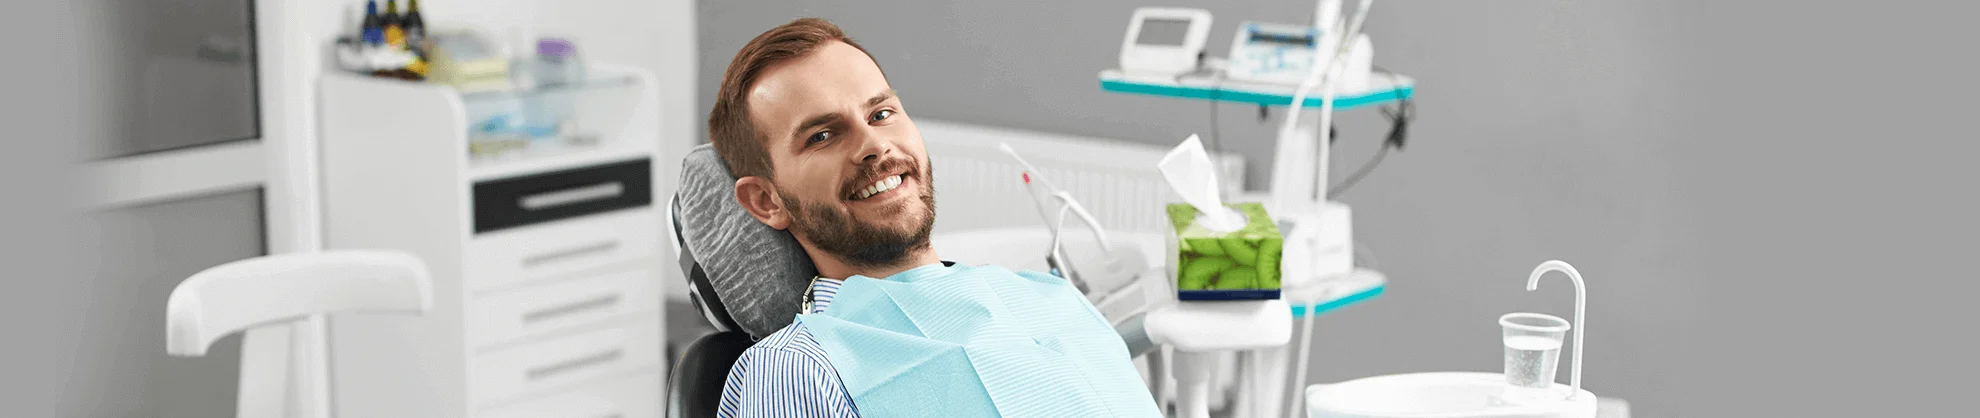 periodontal services background